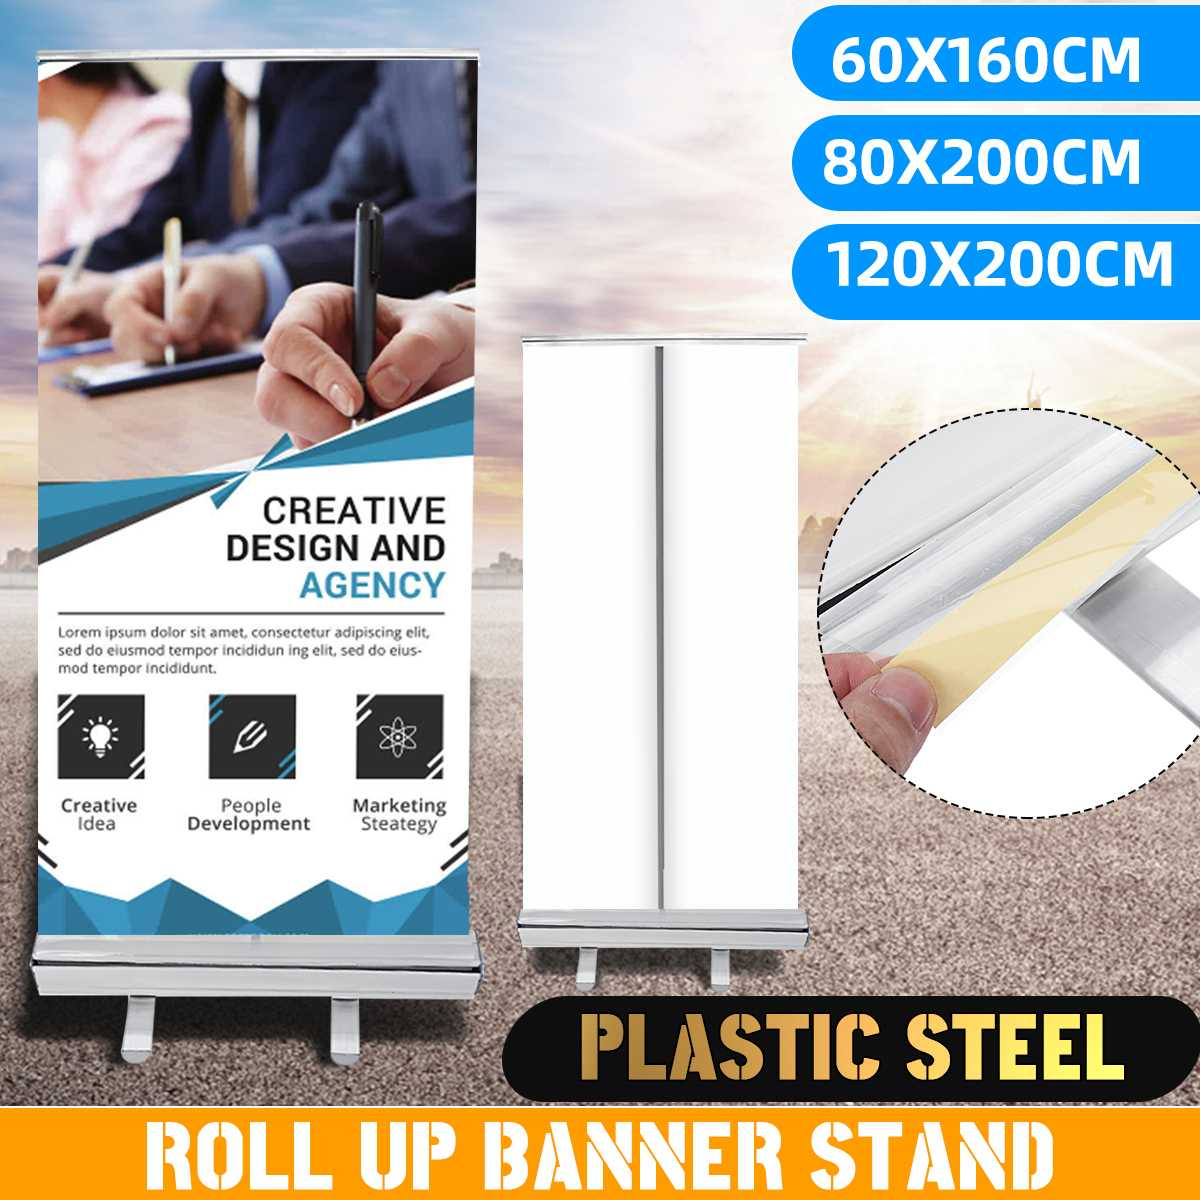 Plastic Steel Advertisng Poster Floor Stand Holder Portable Roll Up Banner Display Rack Show Display Stand Bag Kit 3 Sizes